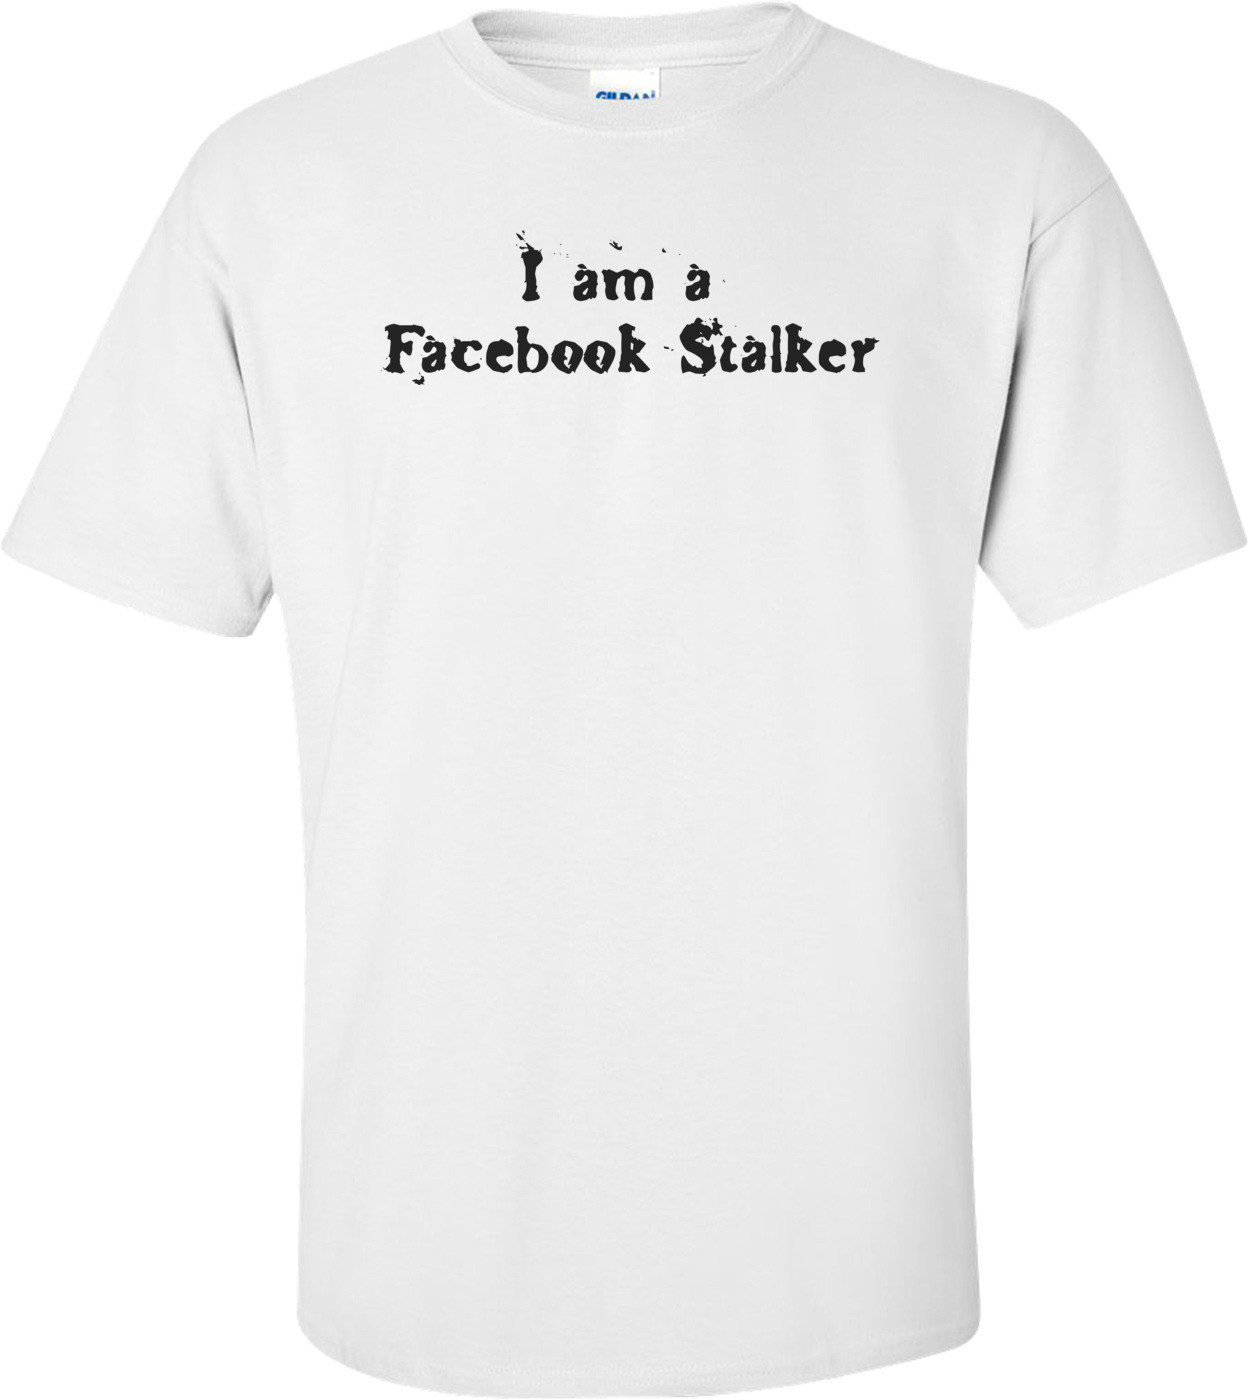 I Am A Facebook Stalker T-shirt